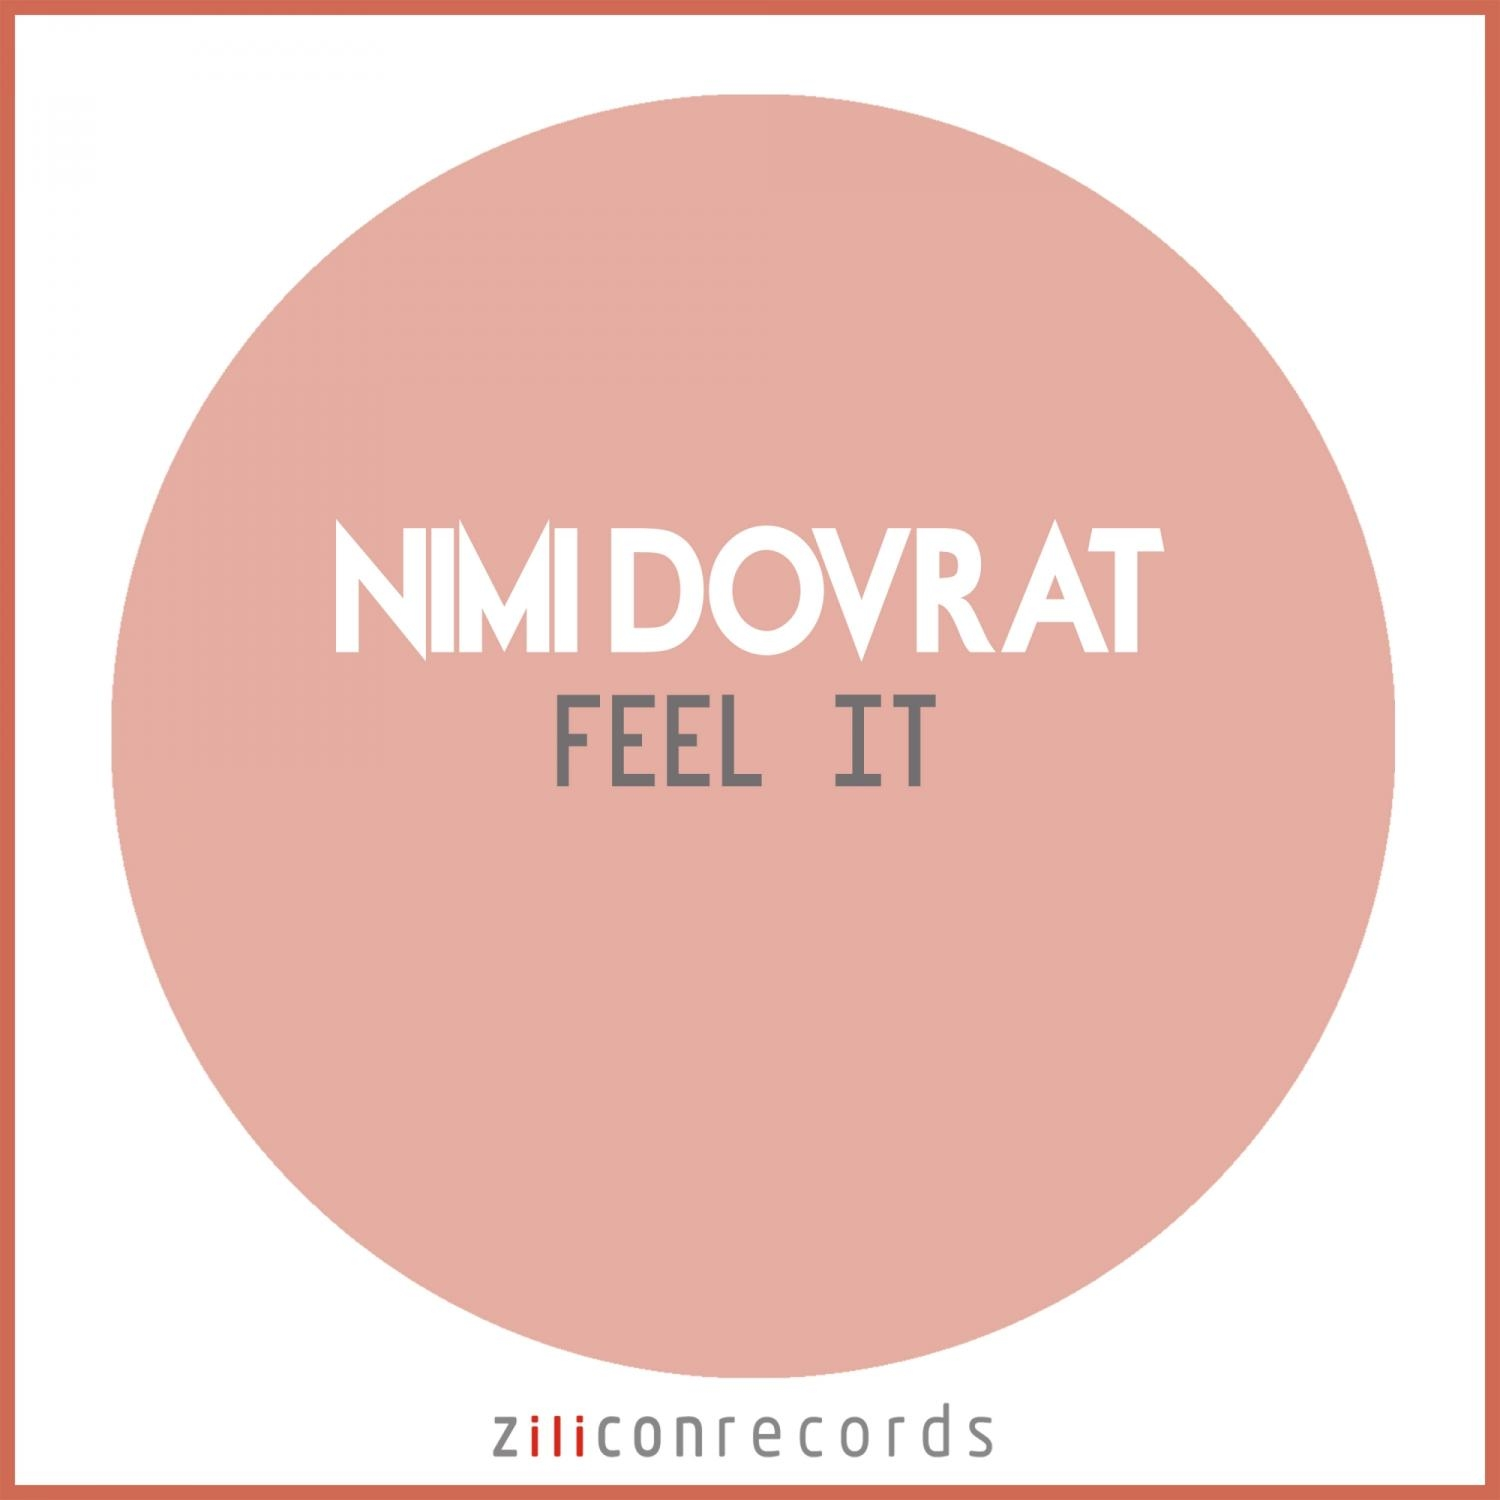 Nimi Dovrat - The Machine  (Original Mix)